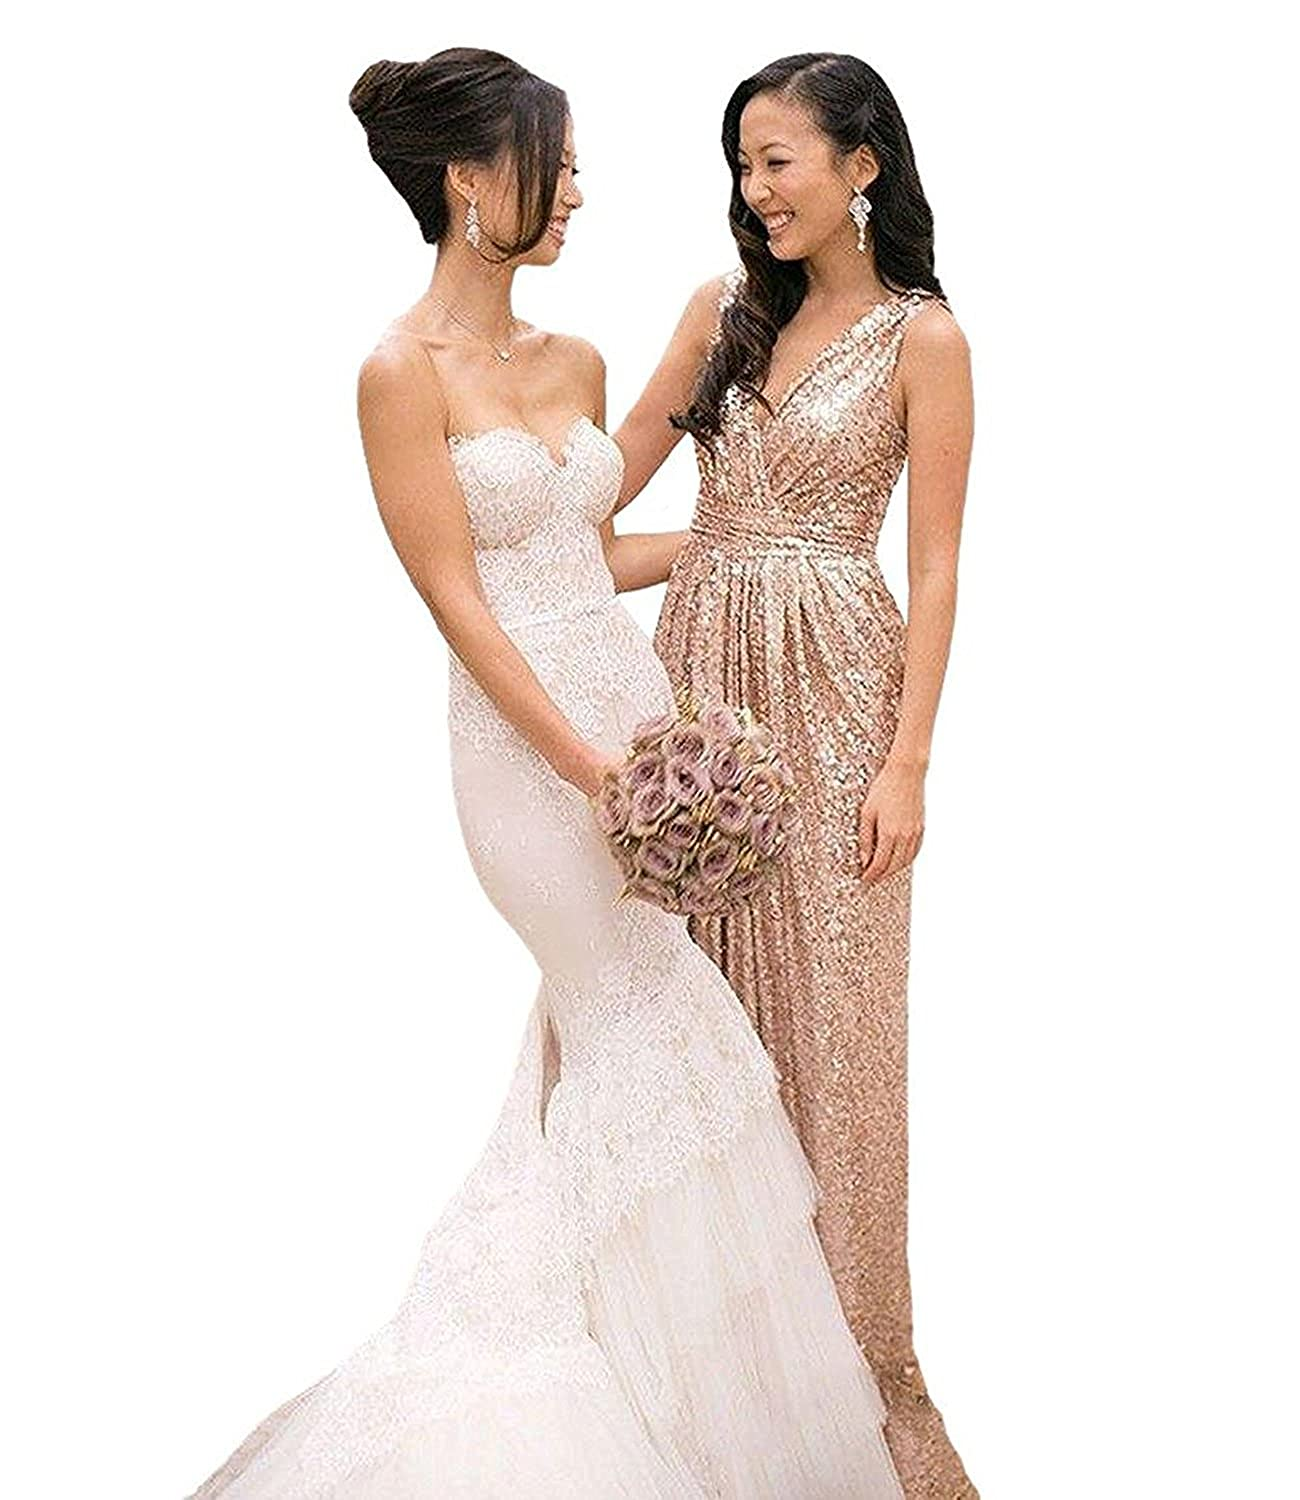 Fanciest Womens V Neck Sequin Rose Gold Bridesmaid Dresses Long 2017 Wedding Party Gowns: Amazon.co.uk: Clothing